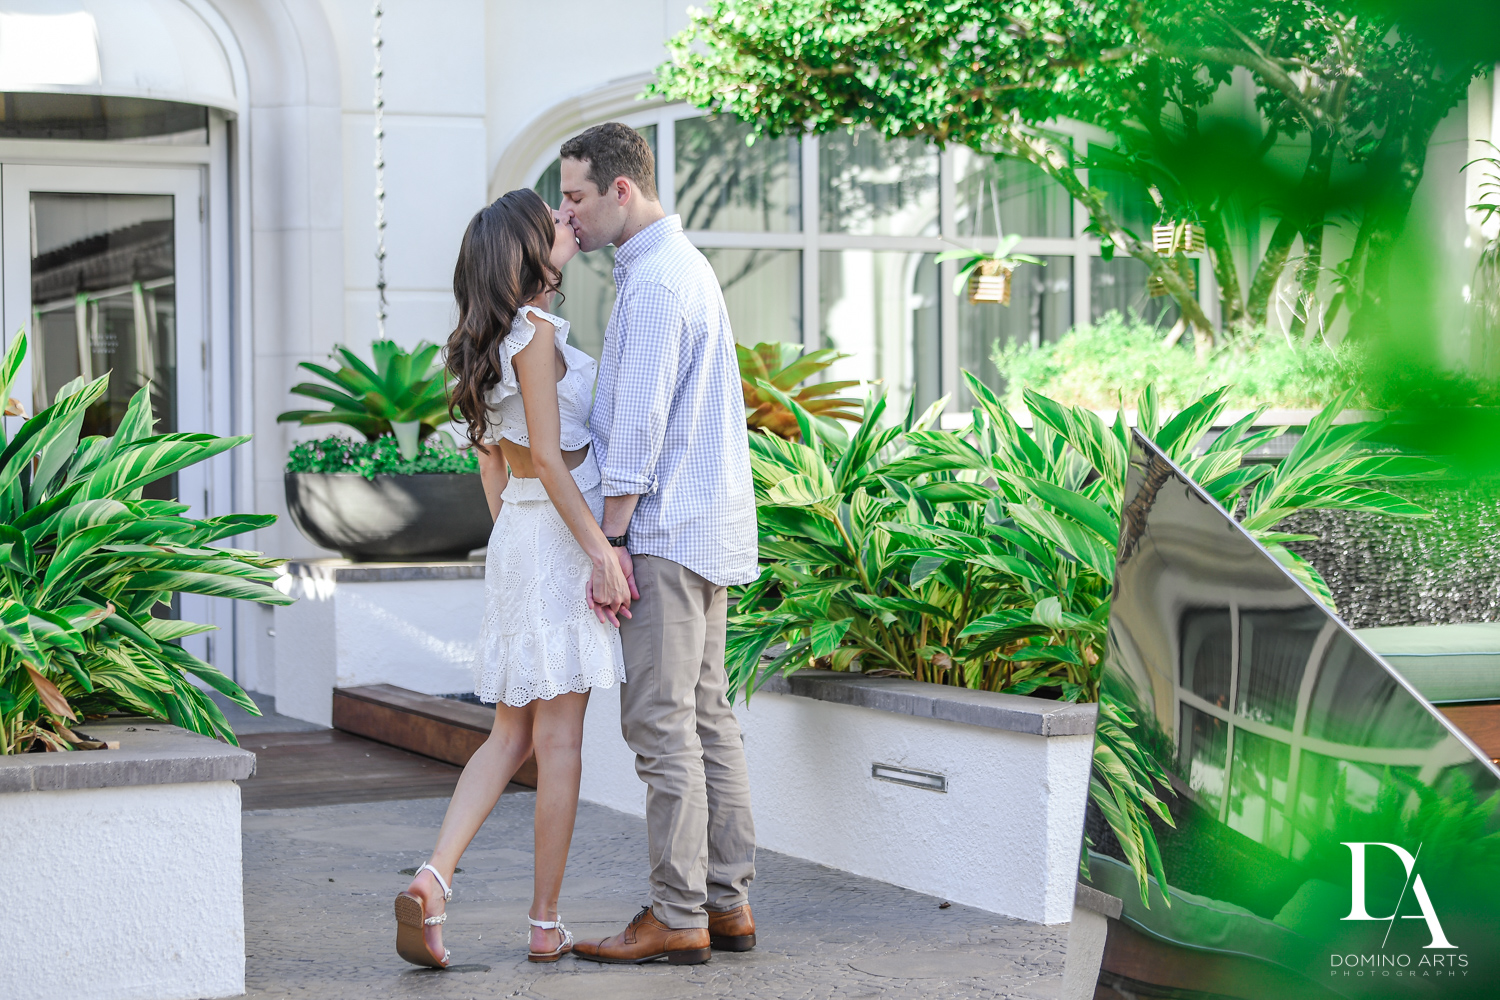 Beach-side Engagement Photography at Eau Palm Beach Resort & Spa by Domino Arts Photography